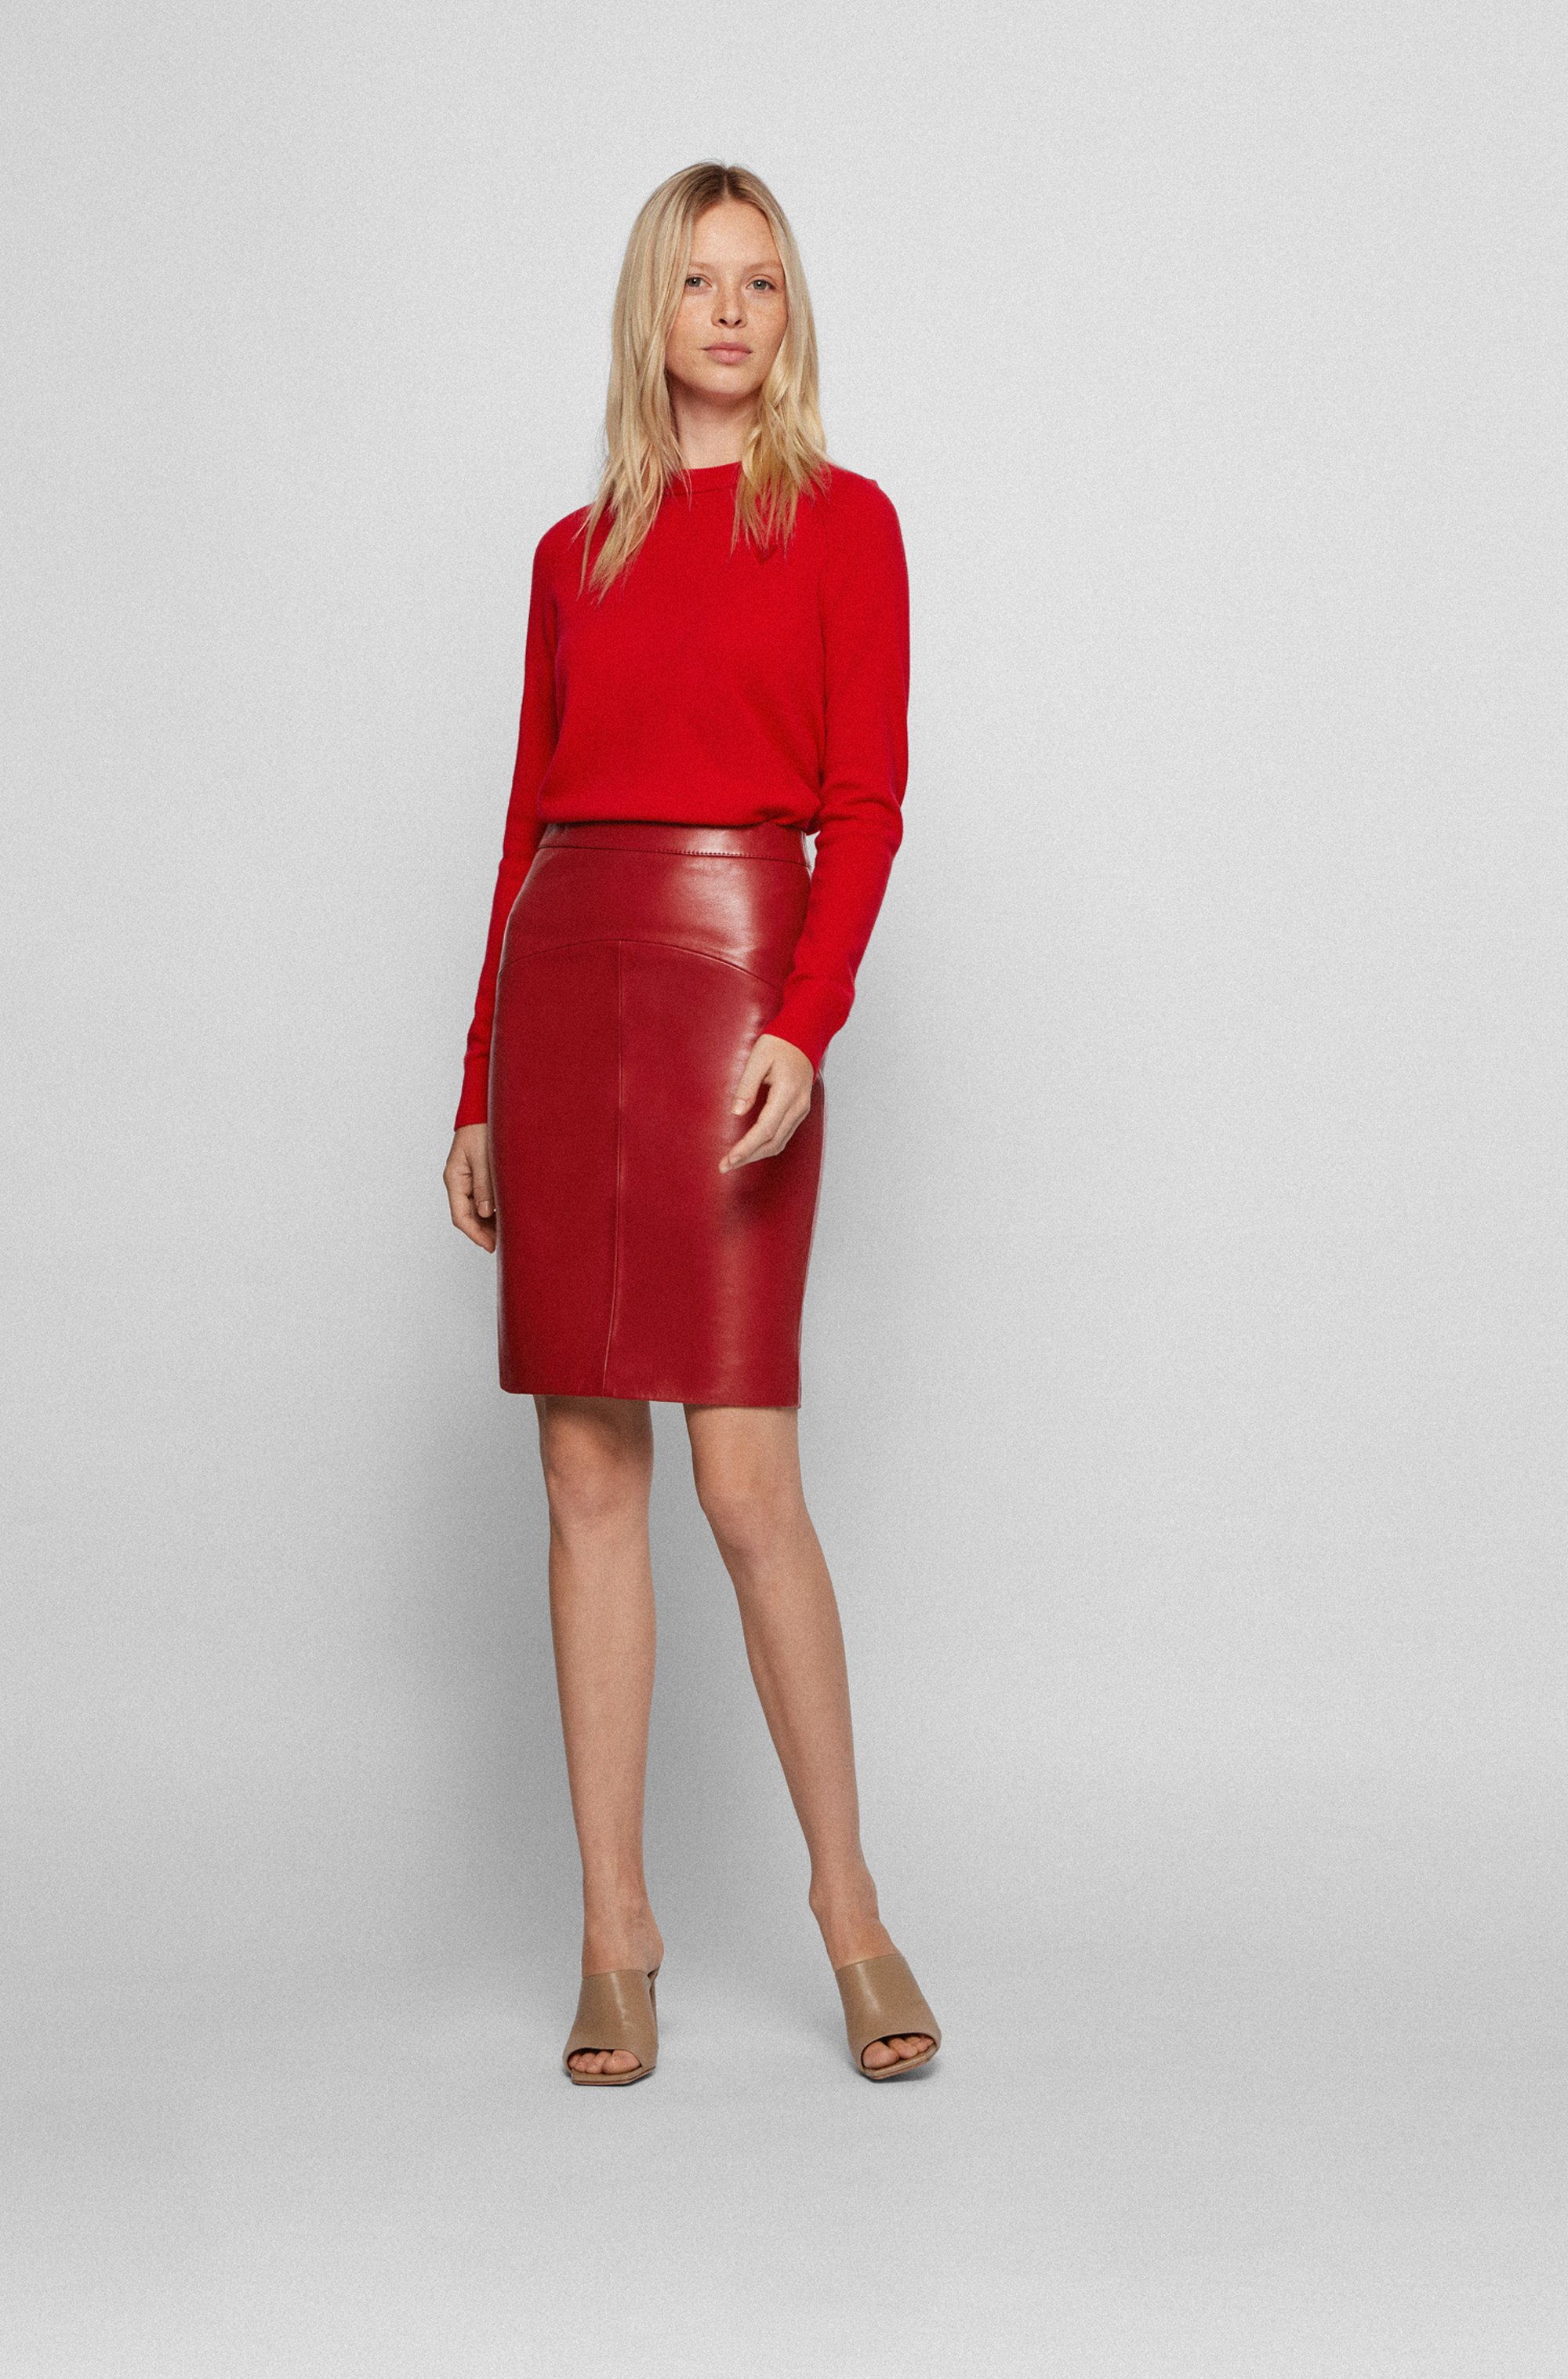 Lamb-leather pencil skirt with rear slit